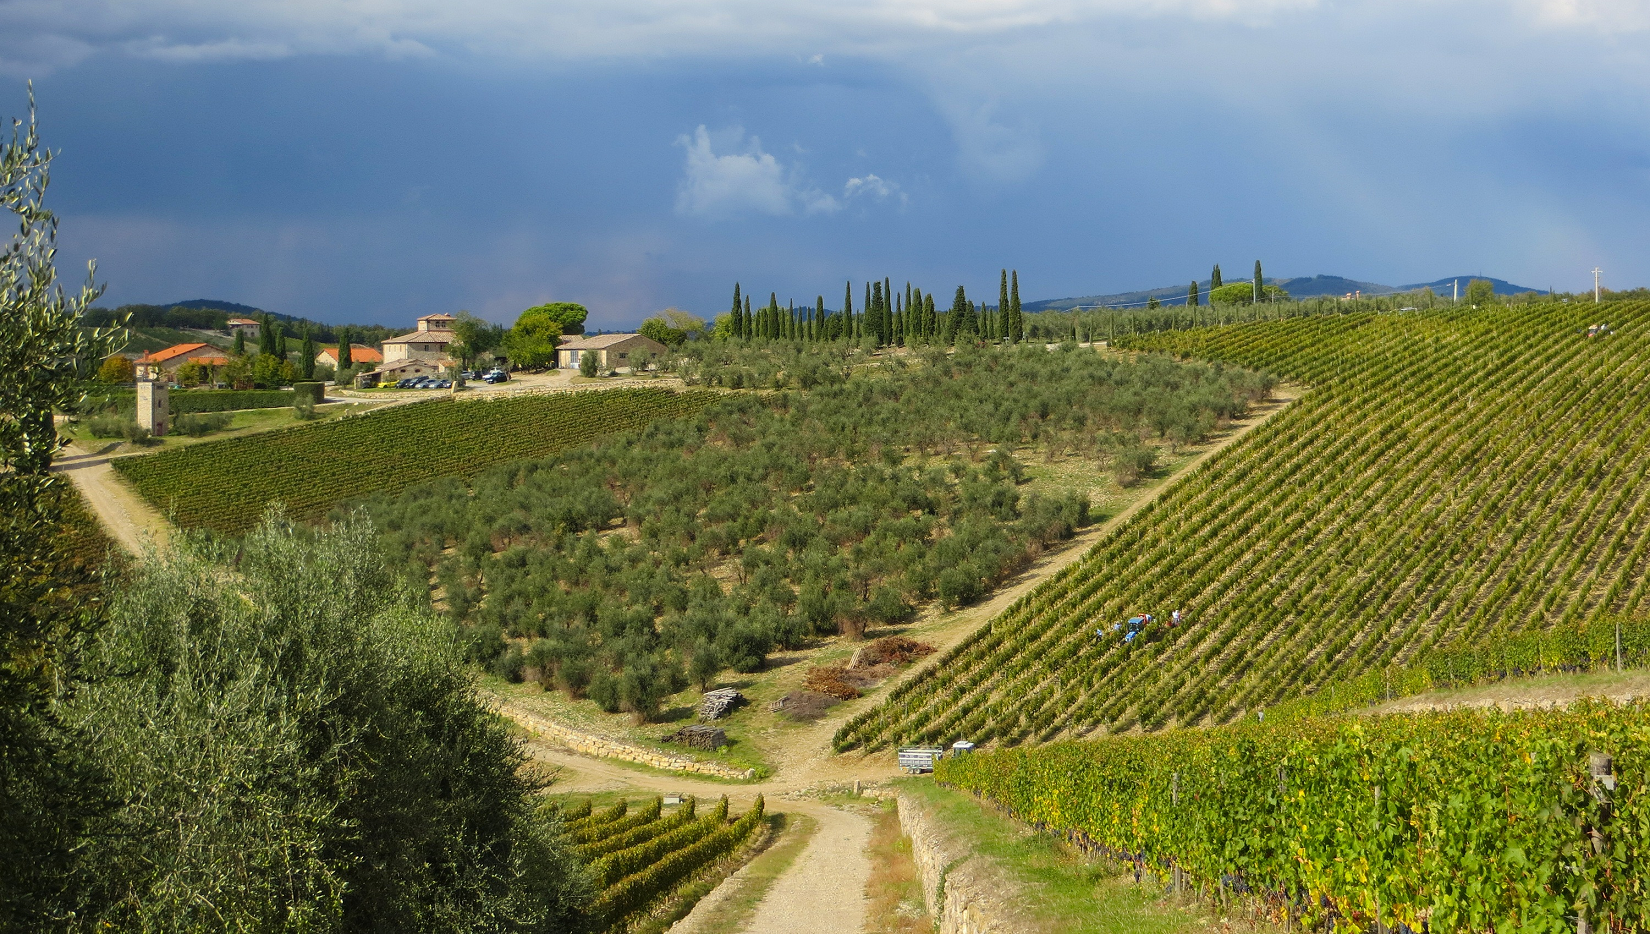 Chianti - vineyards